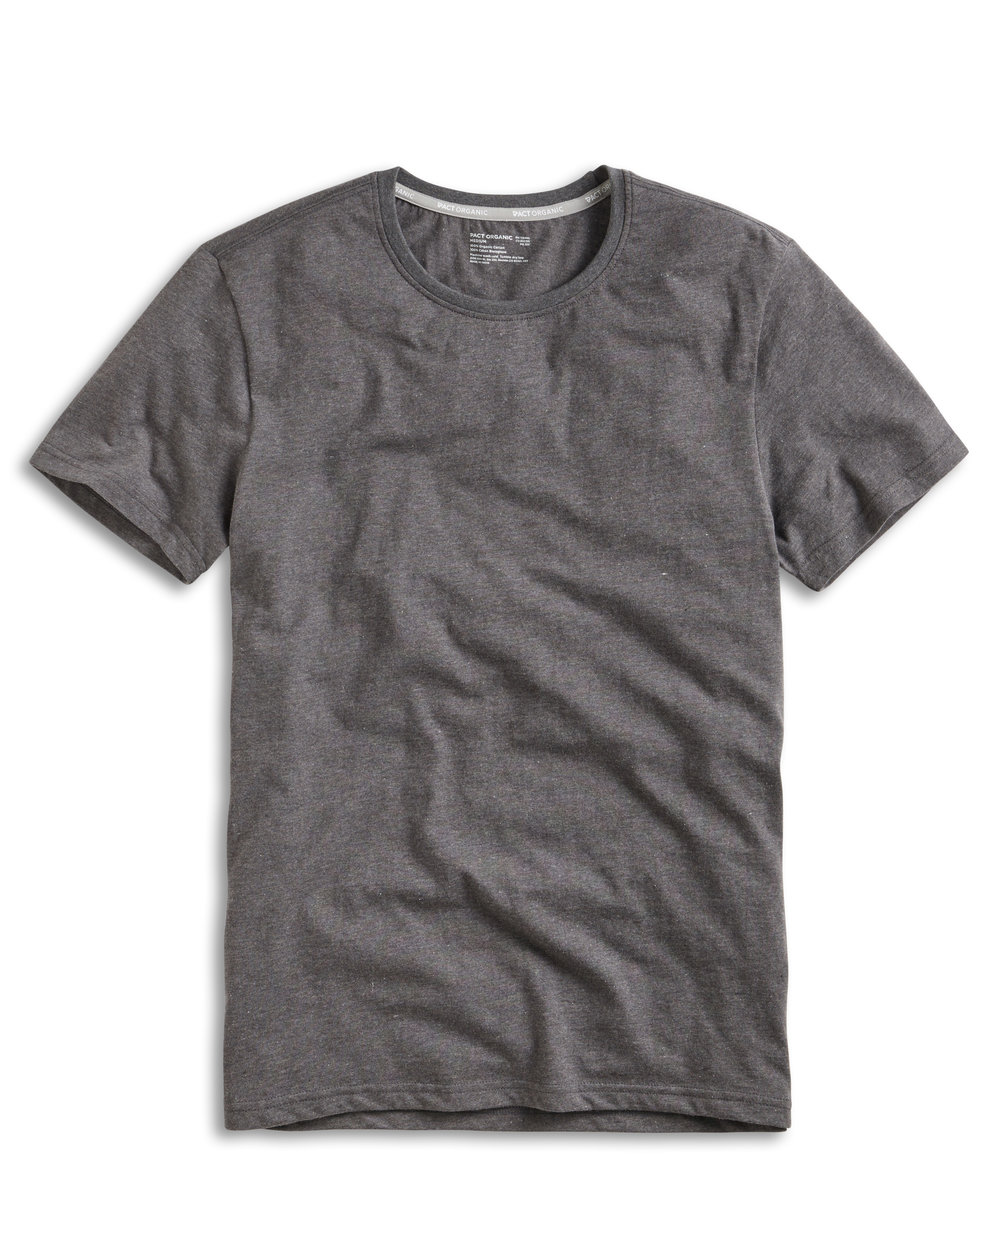 Men's Casual Crew Neck